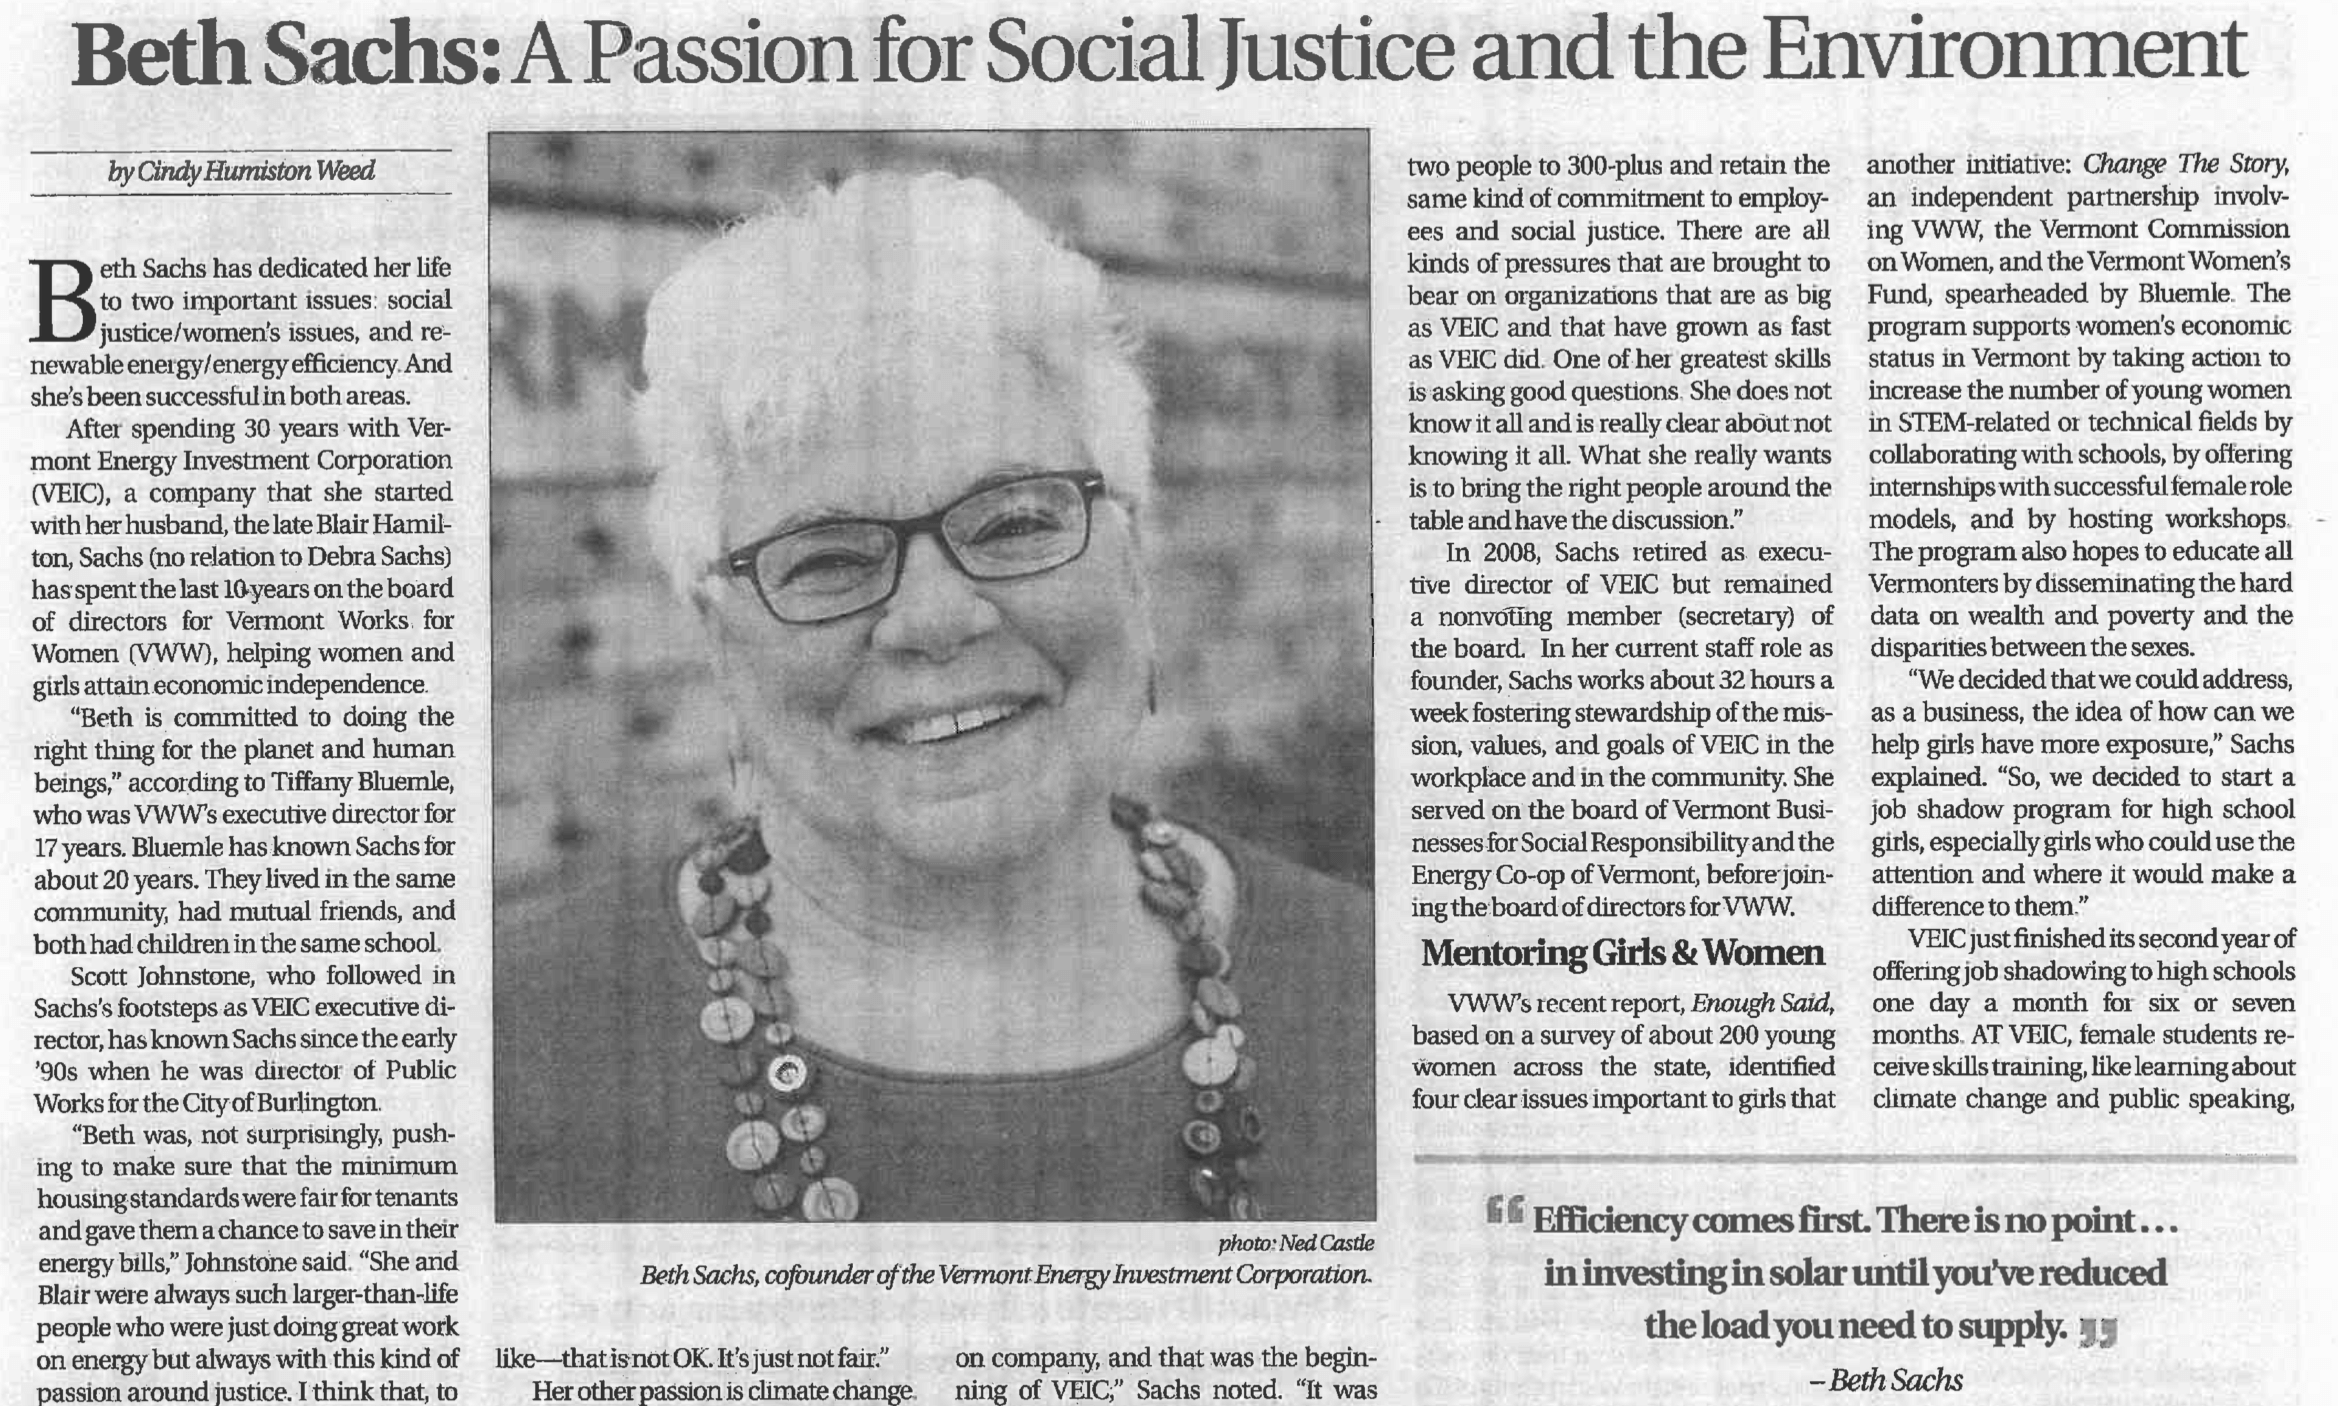 Vermont Woman – Beth Sachs: A Passion for Social Justice and the Environment